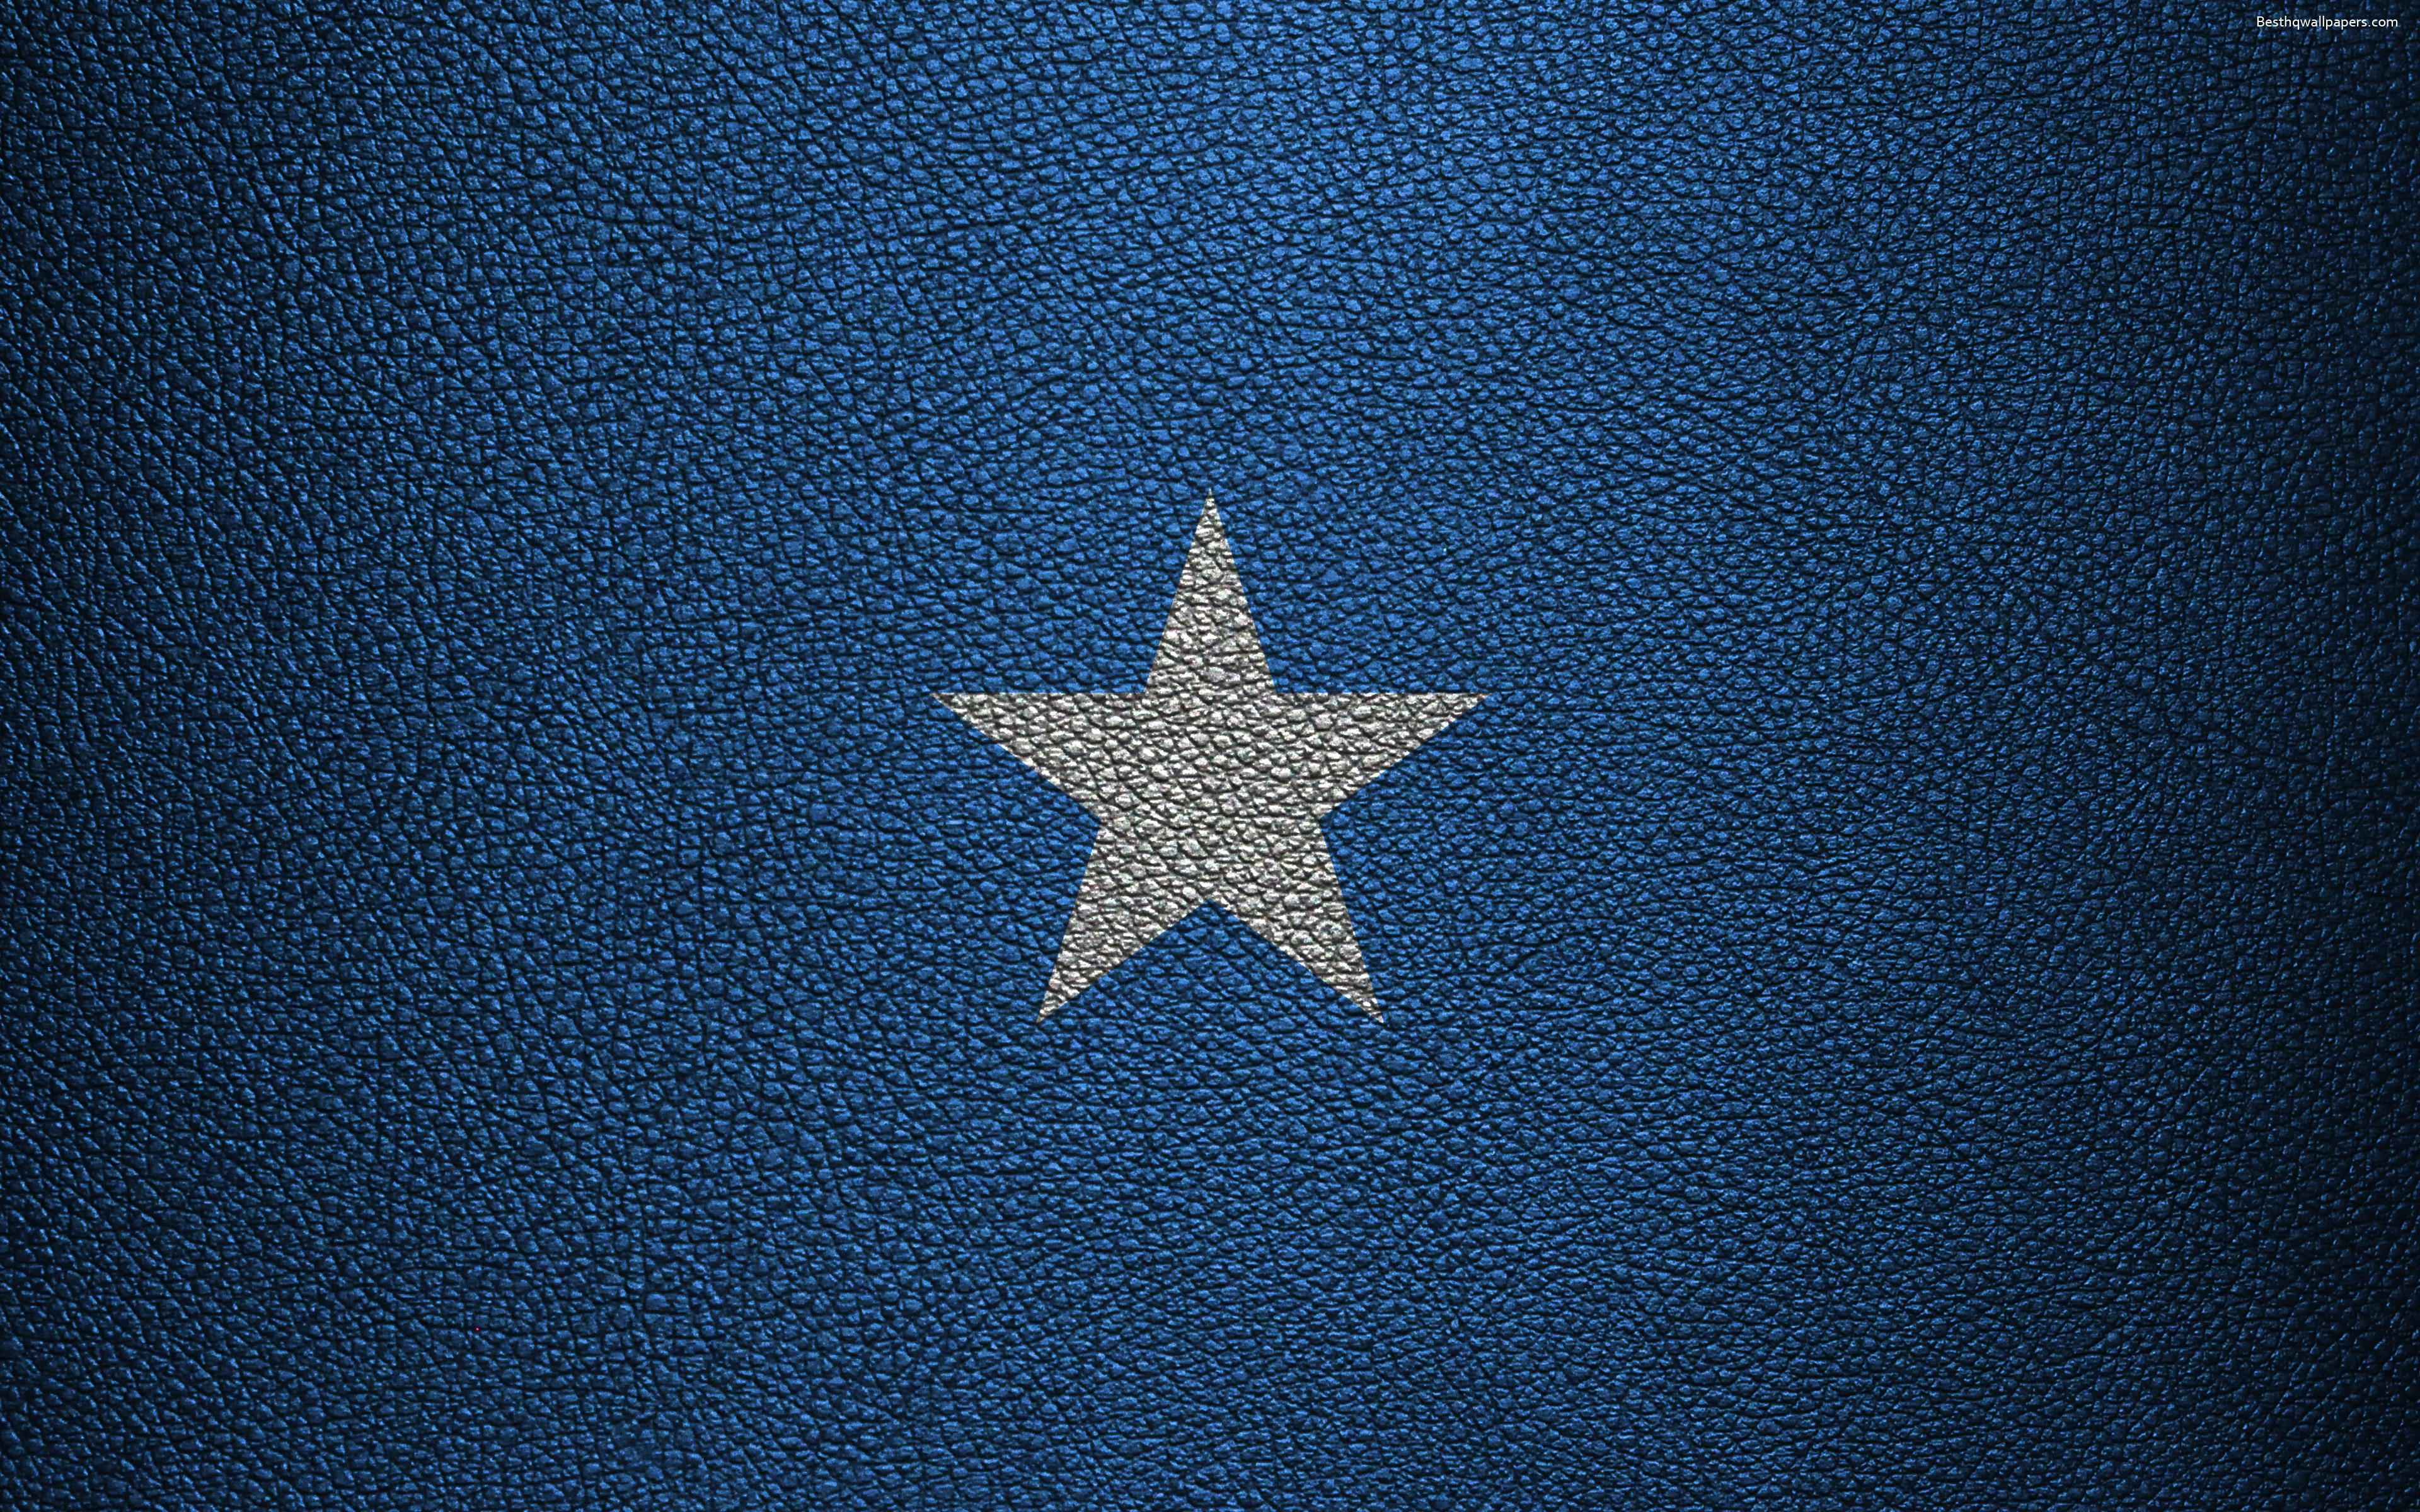 Download wallpapers Flag of Somalia, Africa, 4k, leather texture